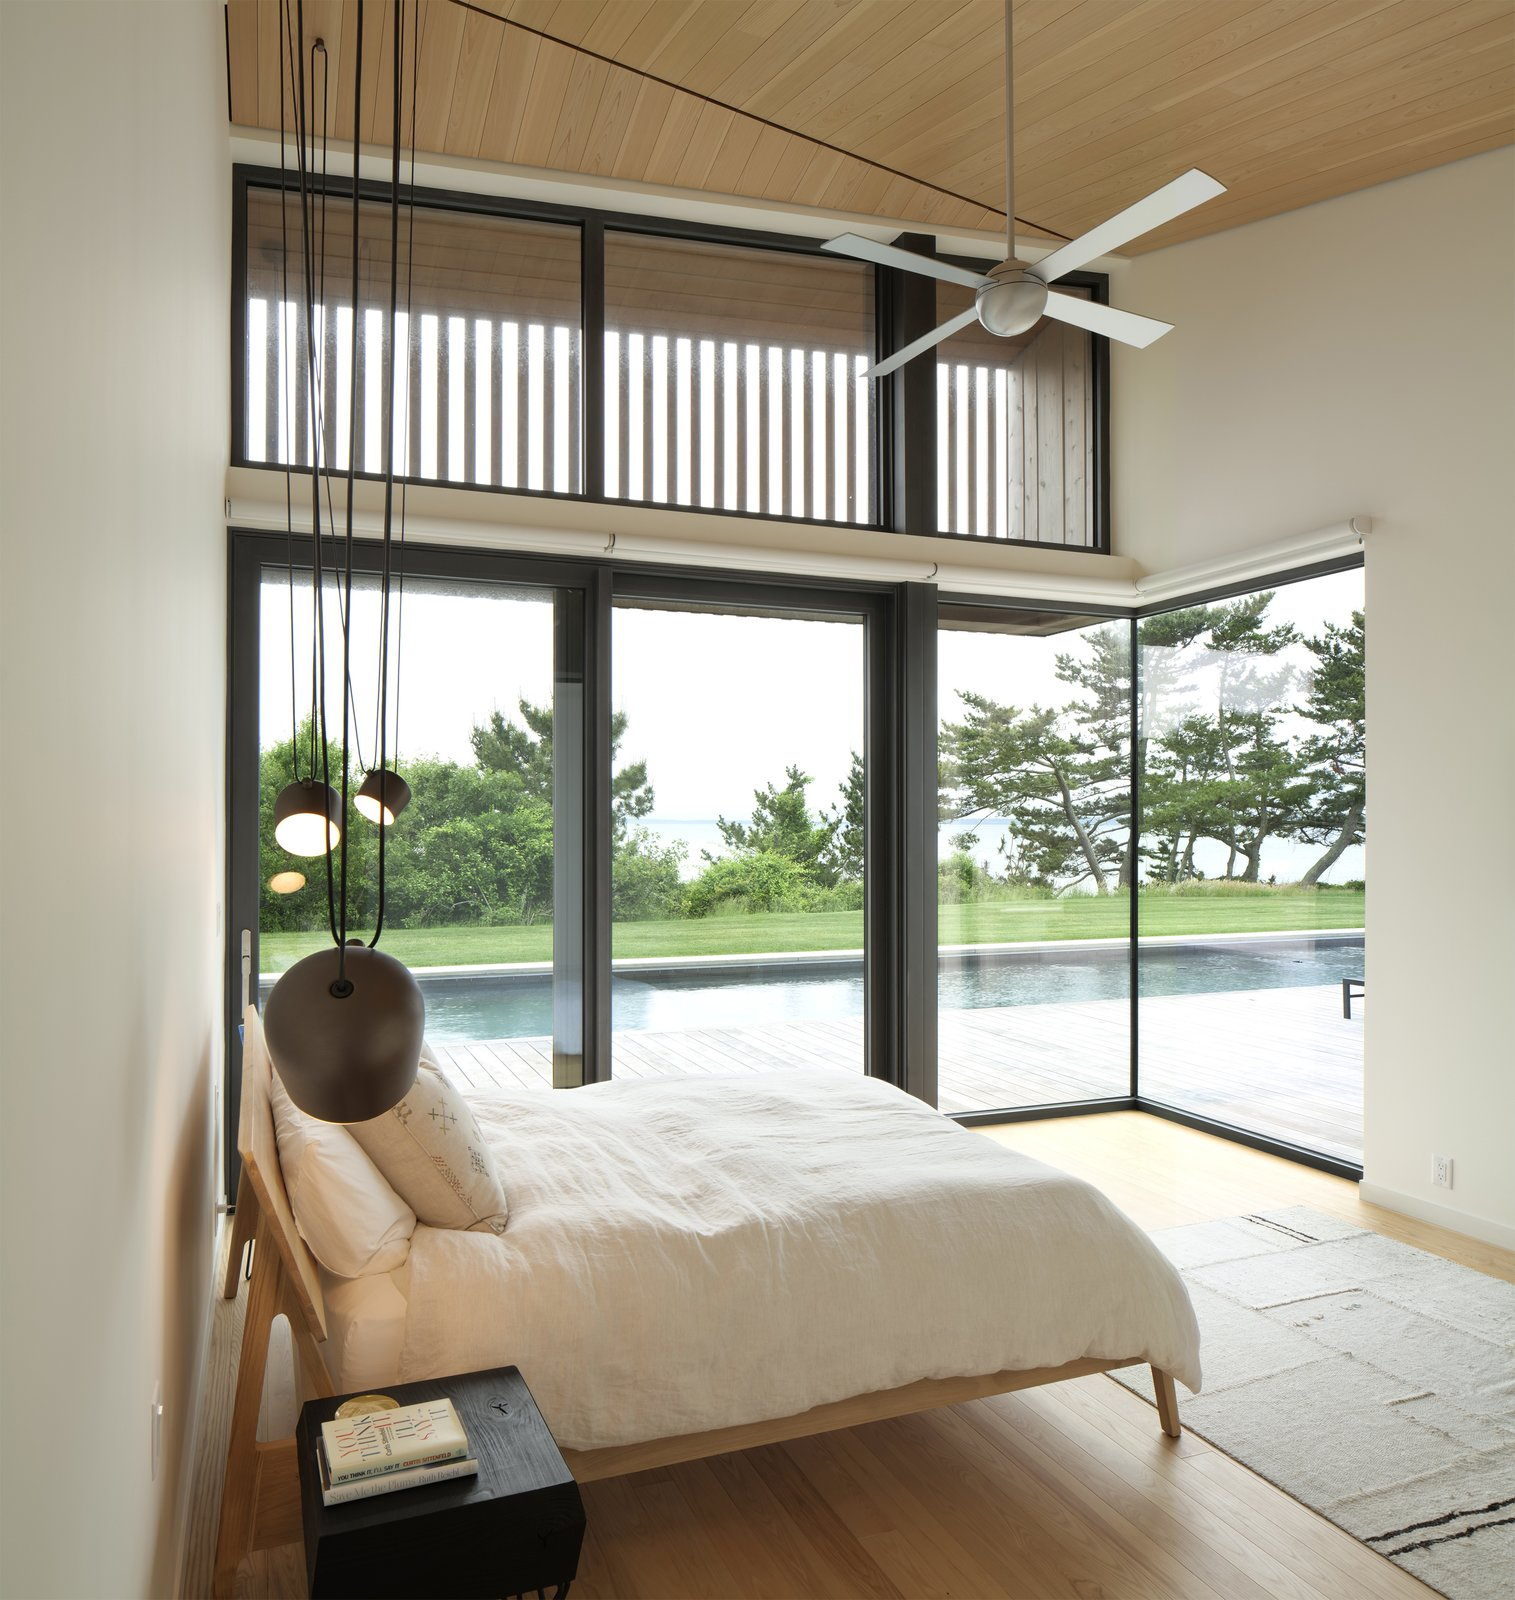 Martha's Vineyard House by Anmahian Winton Architects master bedroom